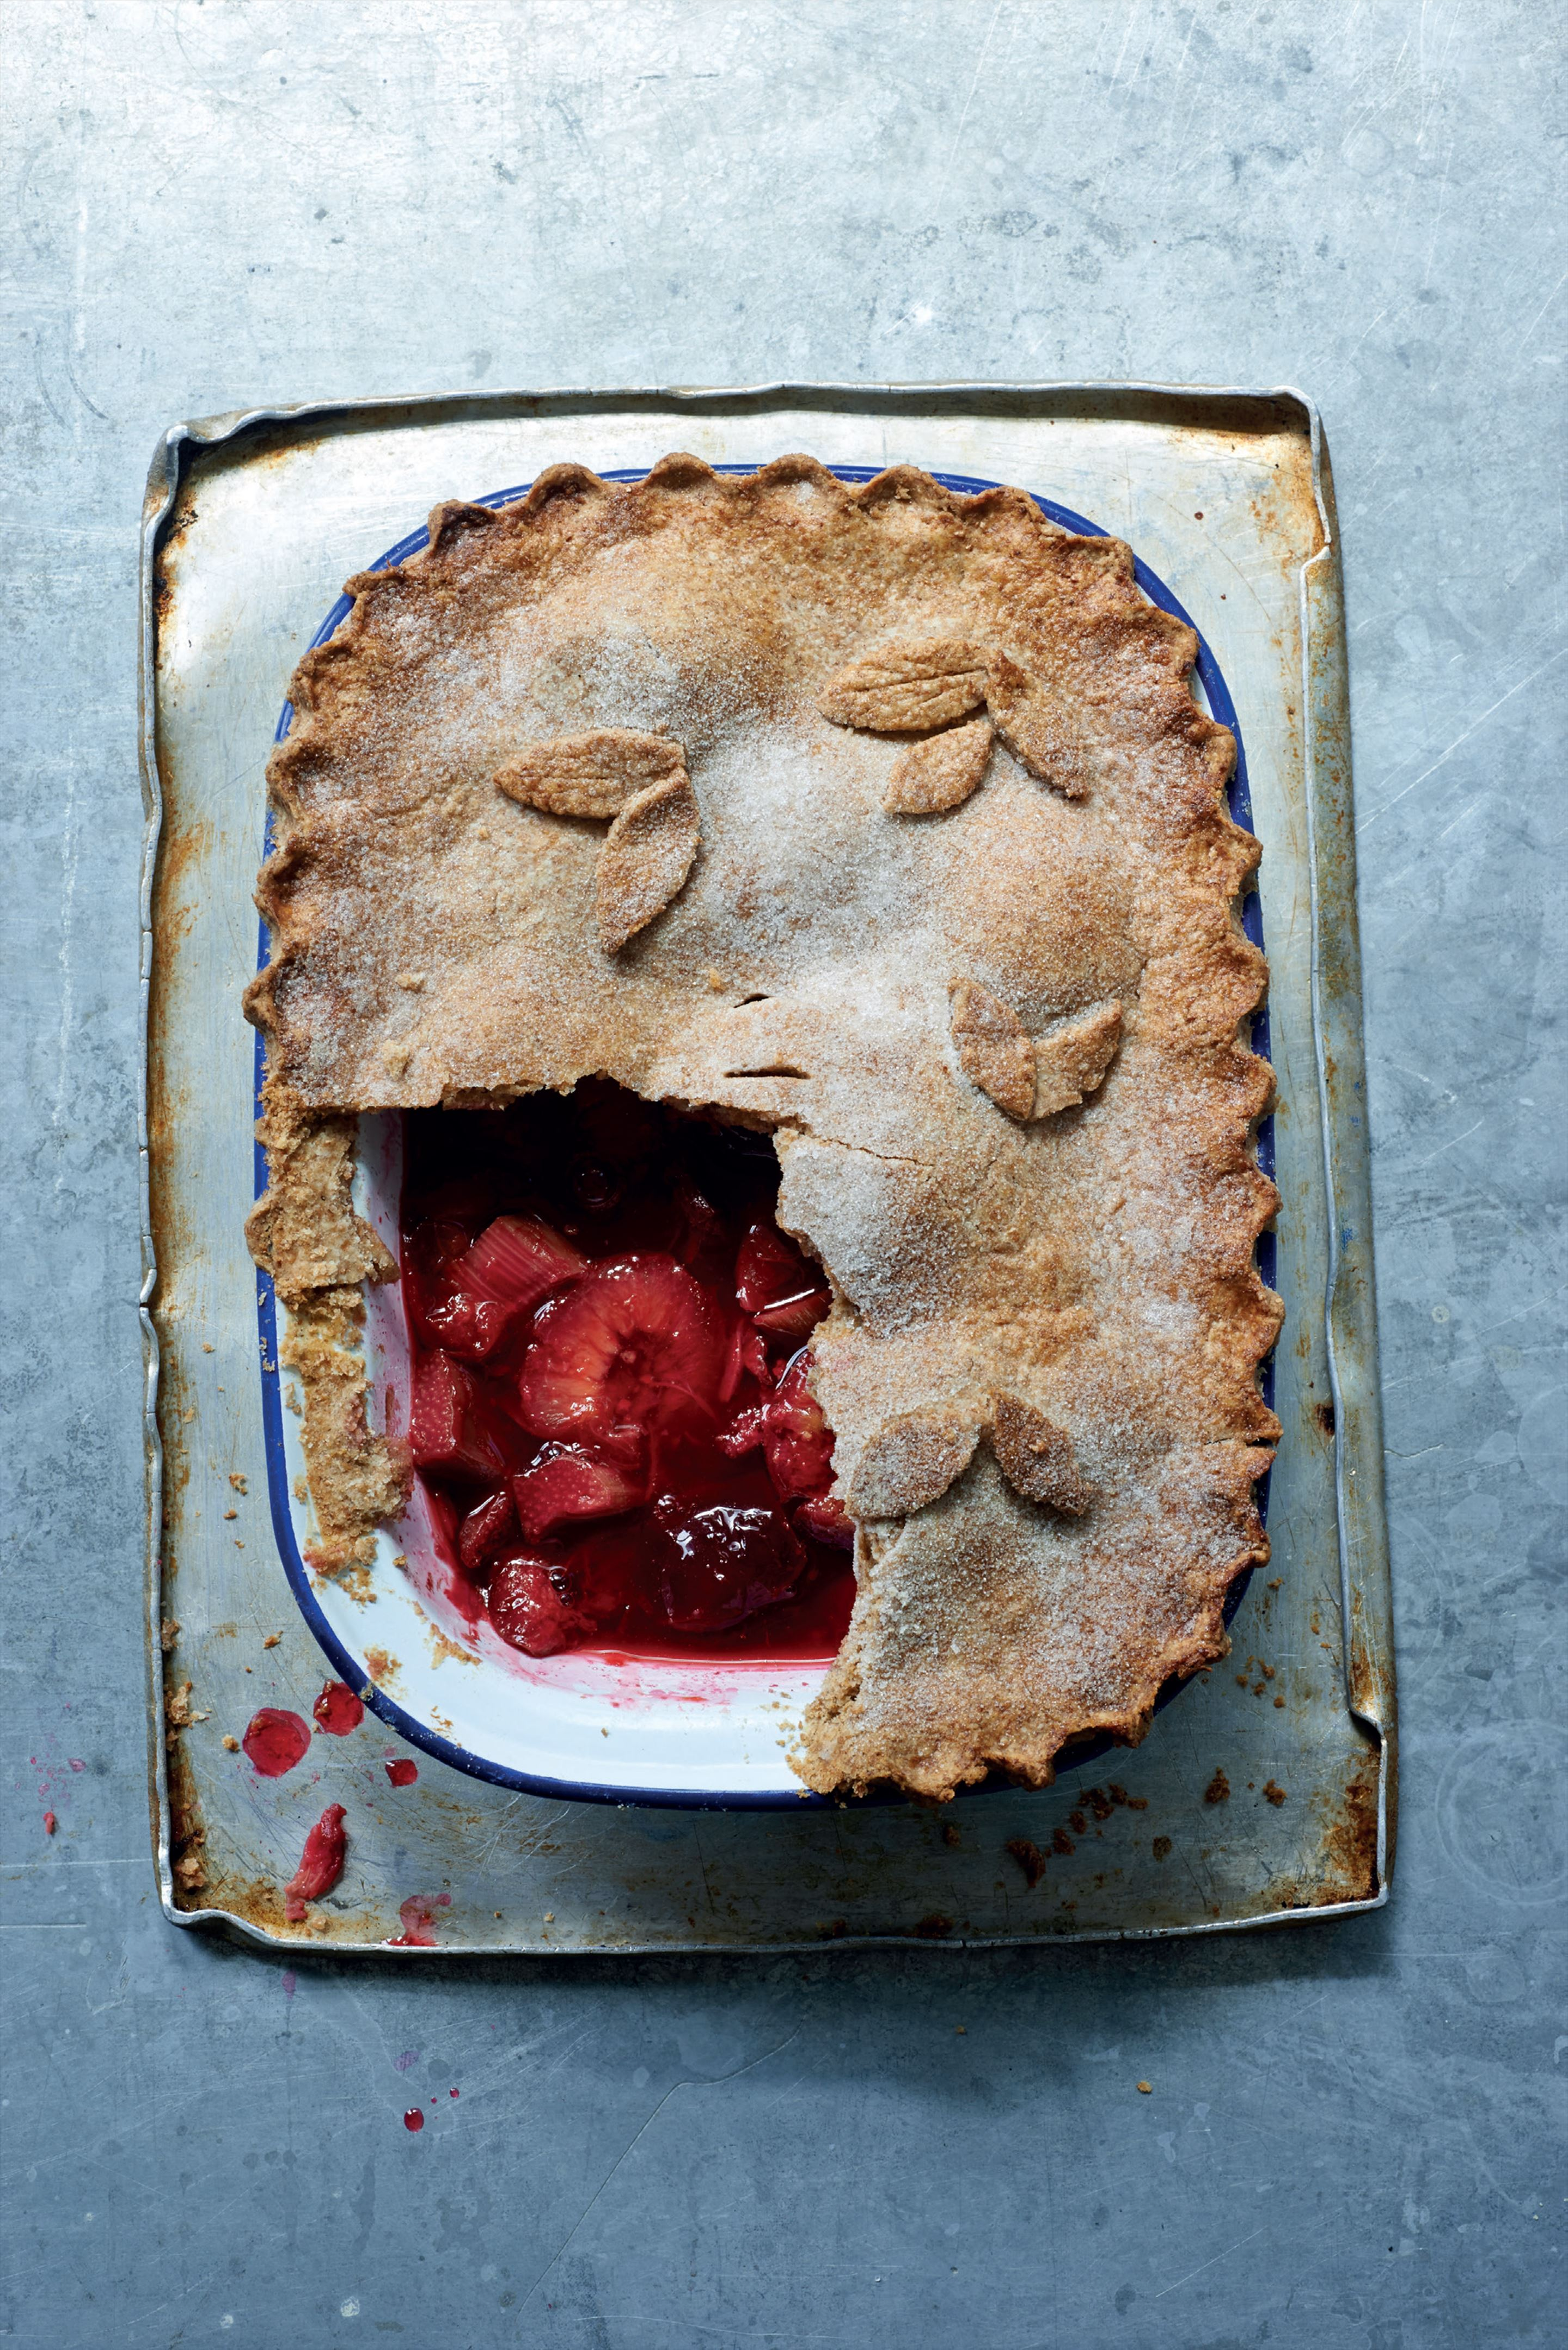 Plum and rhubarb pie